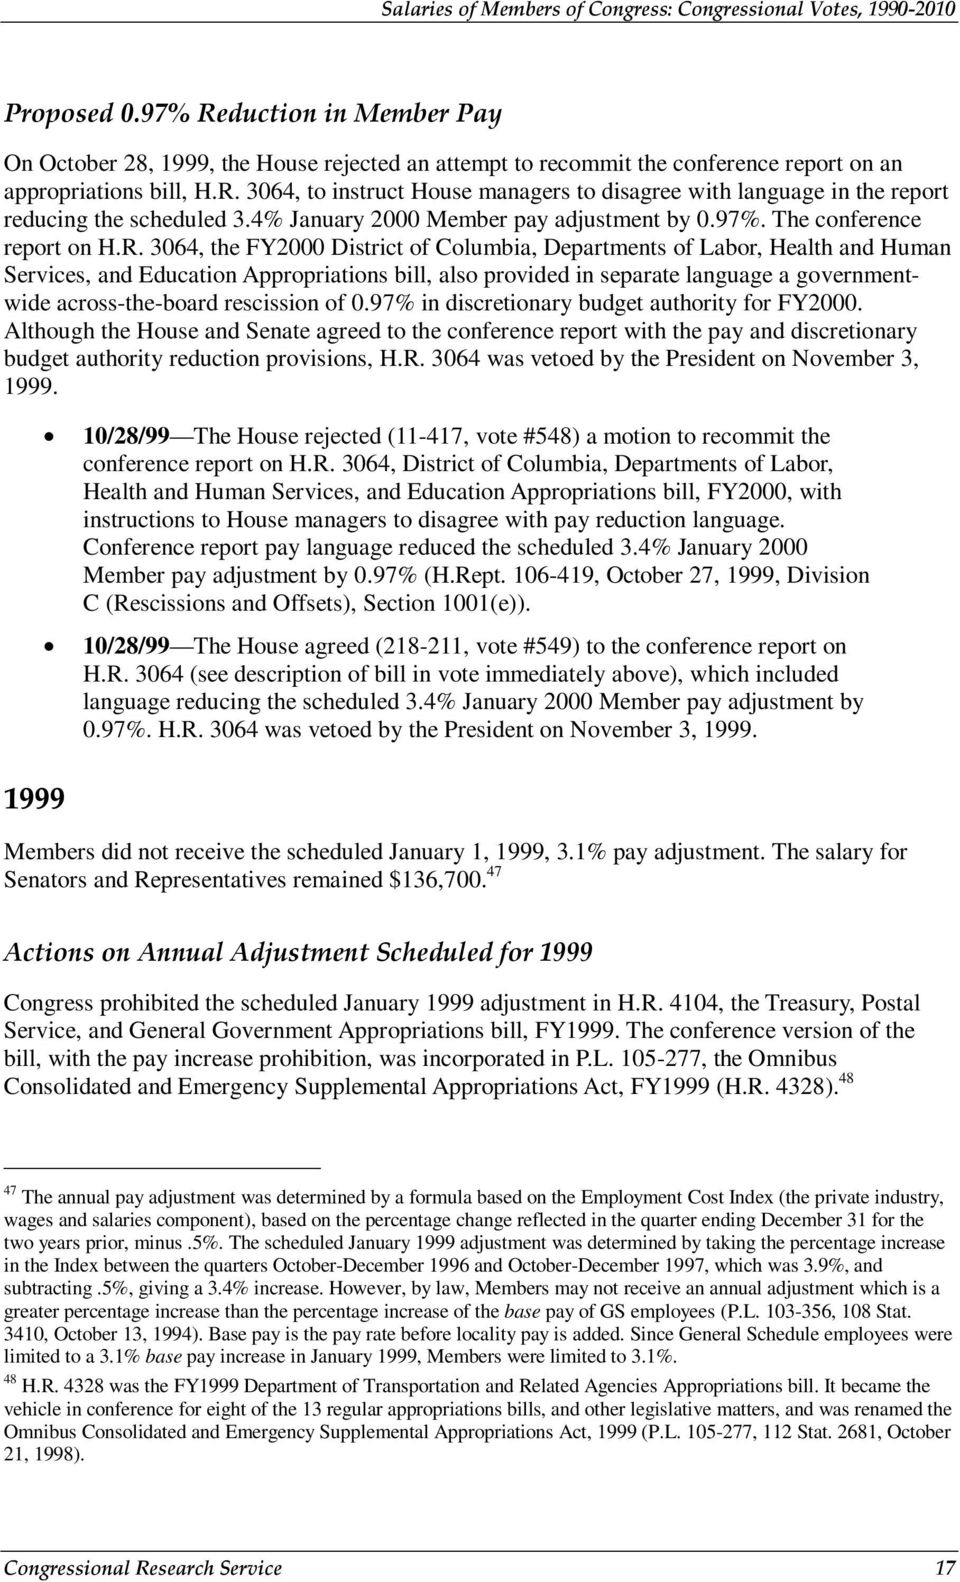 3064, the FY2000 District of Columbia, Departments of Labor, Health and Human Services, and Education Appropriations bill, also provided in separate language a governmentwide across-the-board